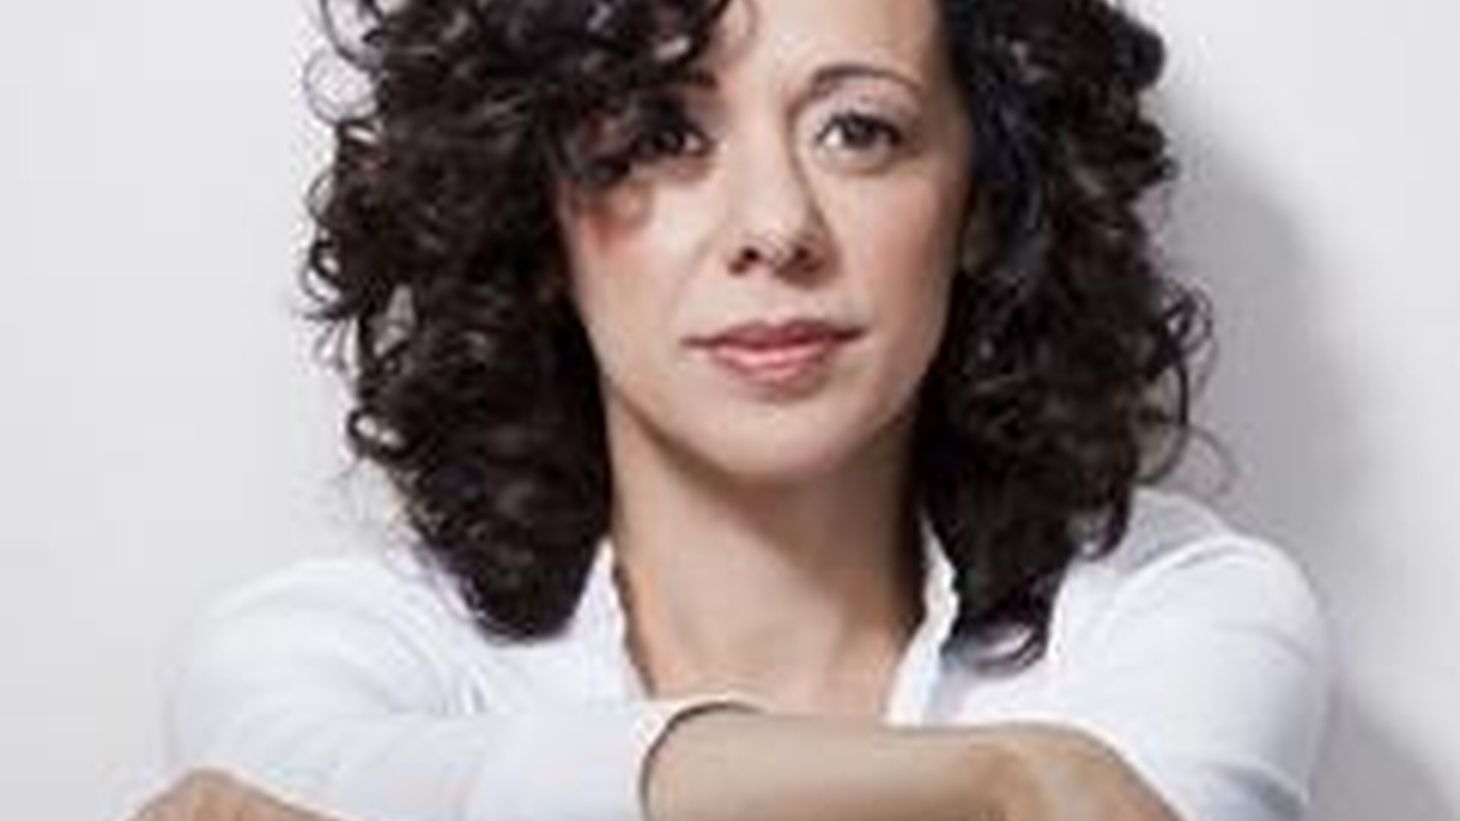 Jazzy Brazilian singer Luciana Souza shares her new work with Morning Becomes Eclectic listeners at 11:15am. Tom Schnabel sits in for Jason Bentley.